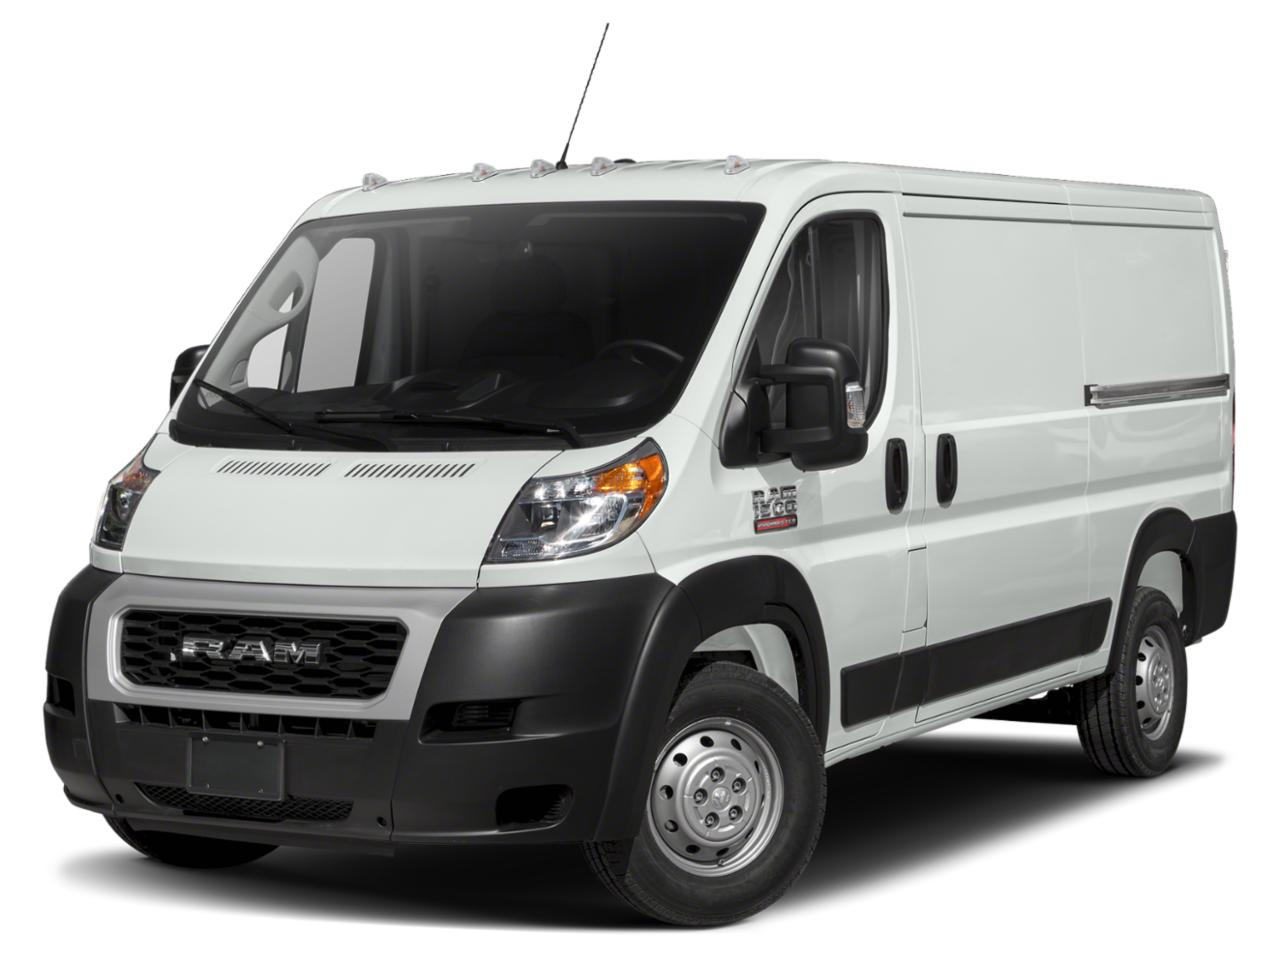 2019 Ram ProMaster Cargo Van Vehicle Photo in Owensboro, KY 42303